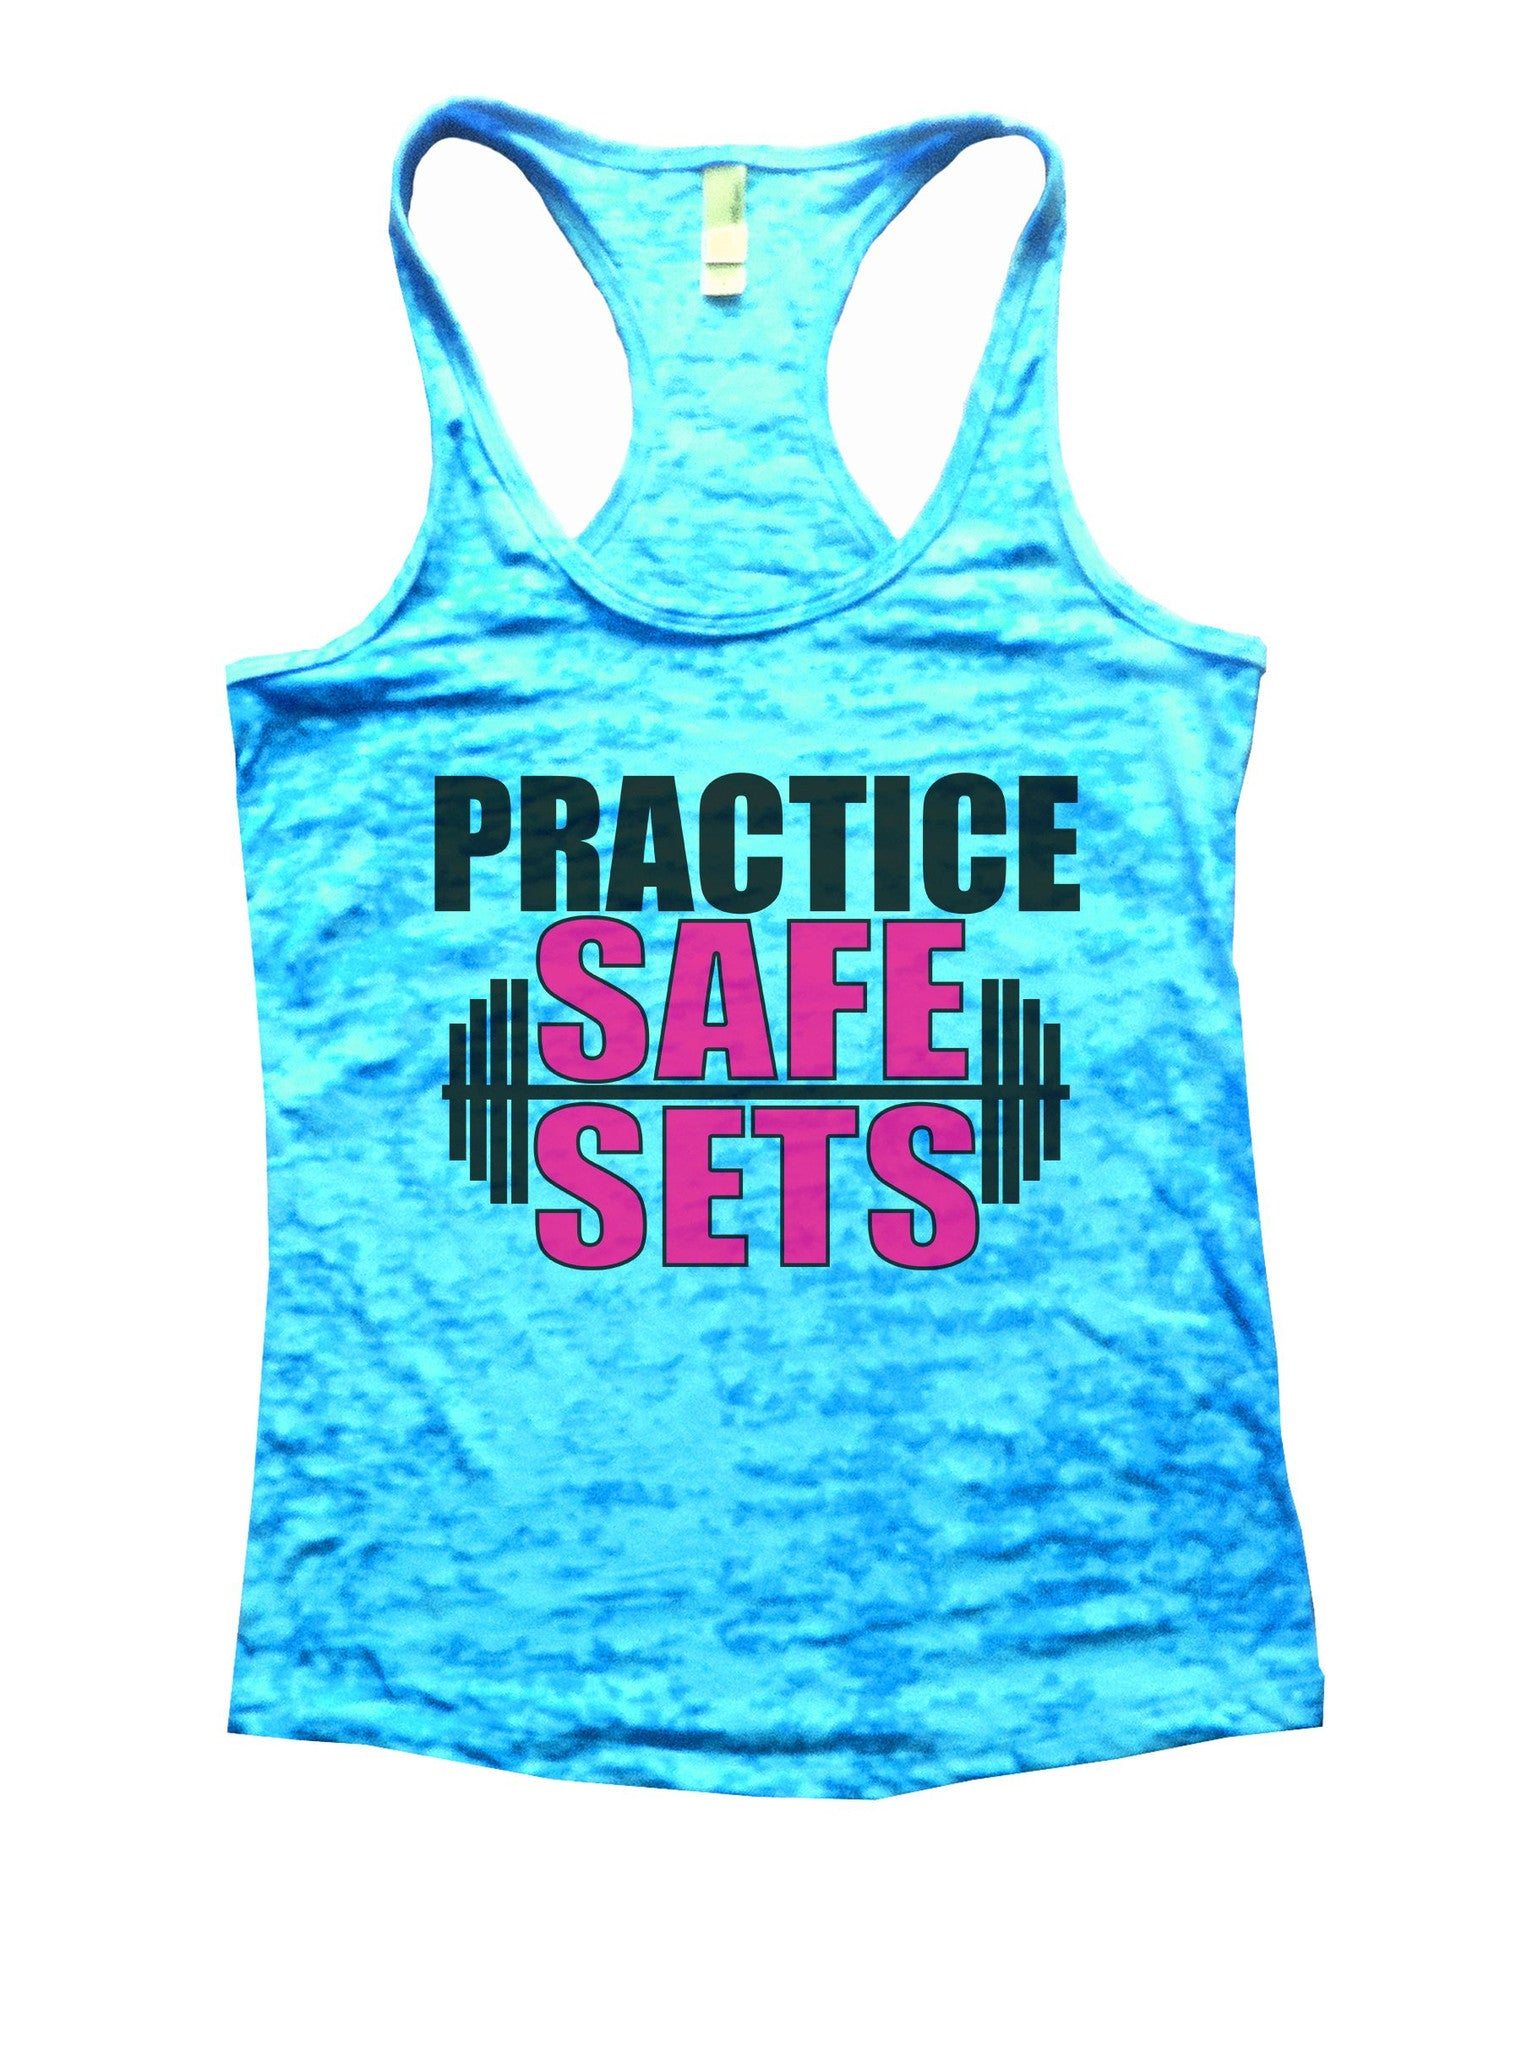 Practice Safe Sets Burnout Tank Top By BurnoutTankTops.com - 1124 - Funny Shirts Tank Tops Burnouts and Triblends  - 5